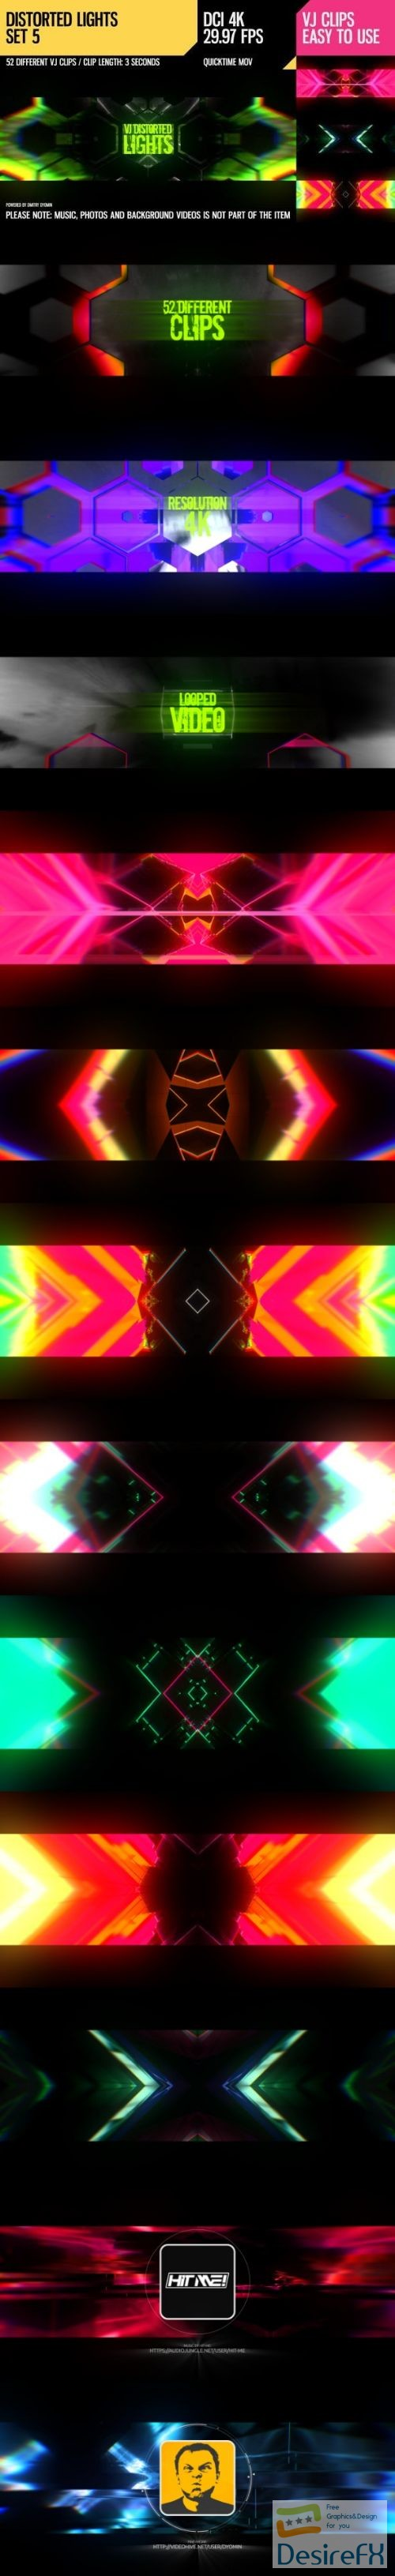 after-effects-projects - Videohive VJ Distorted Lights (4K Set 5) 19201159